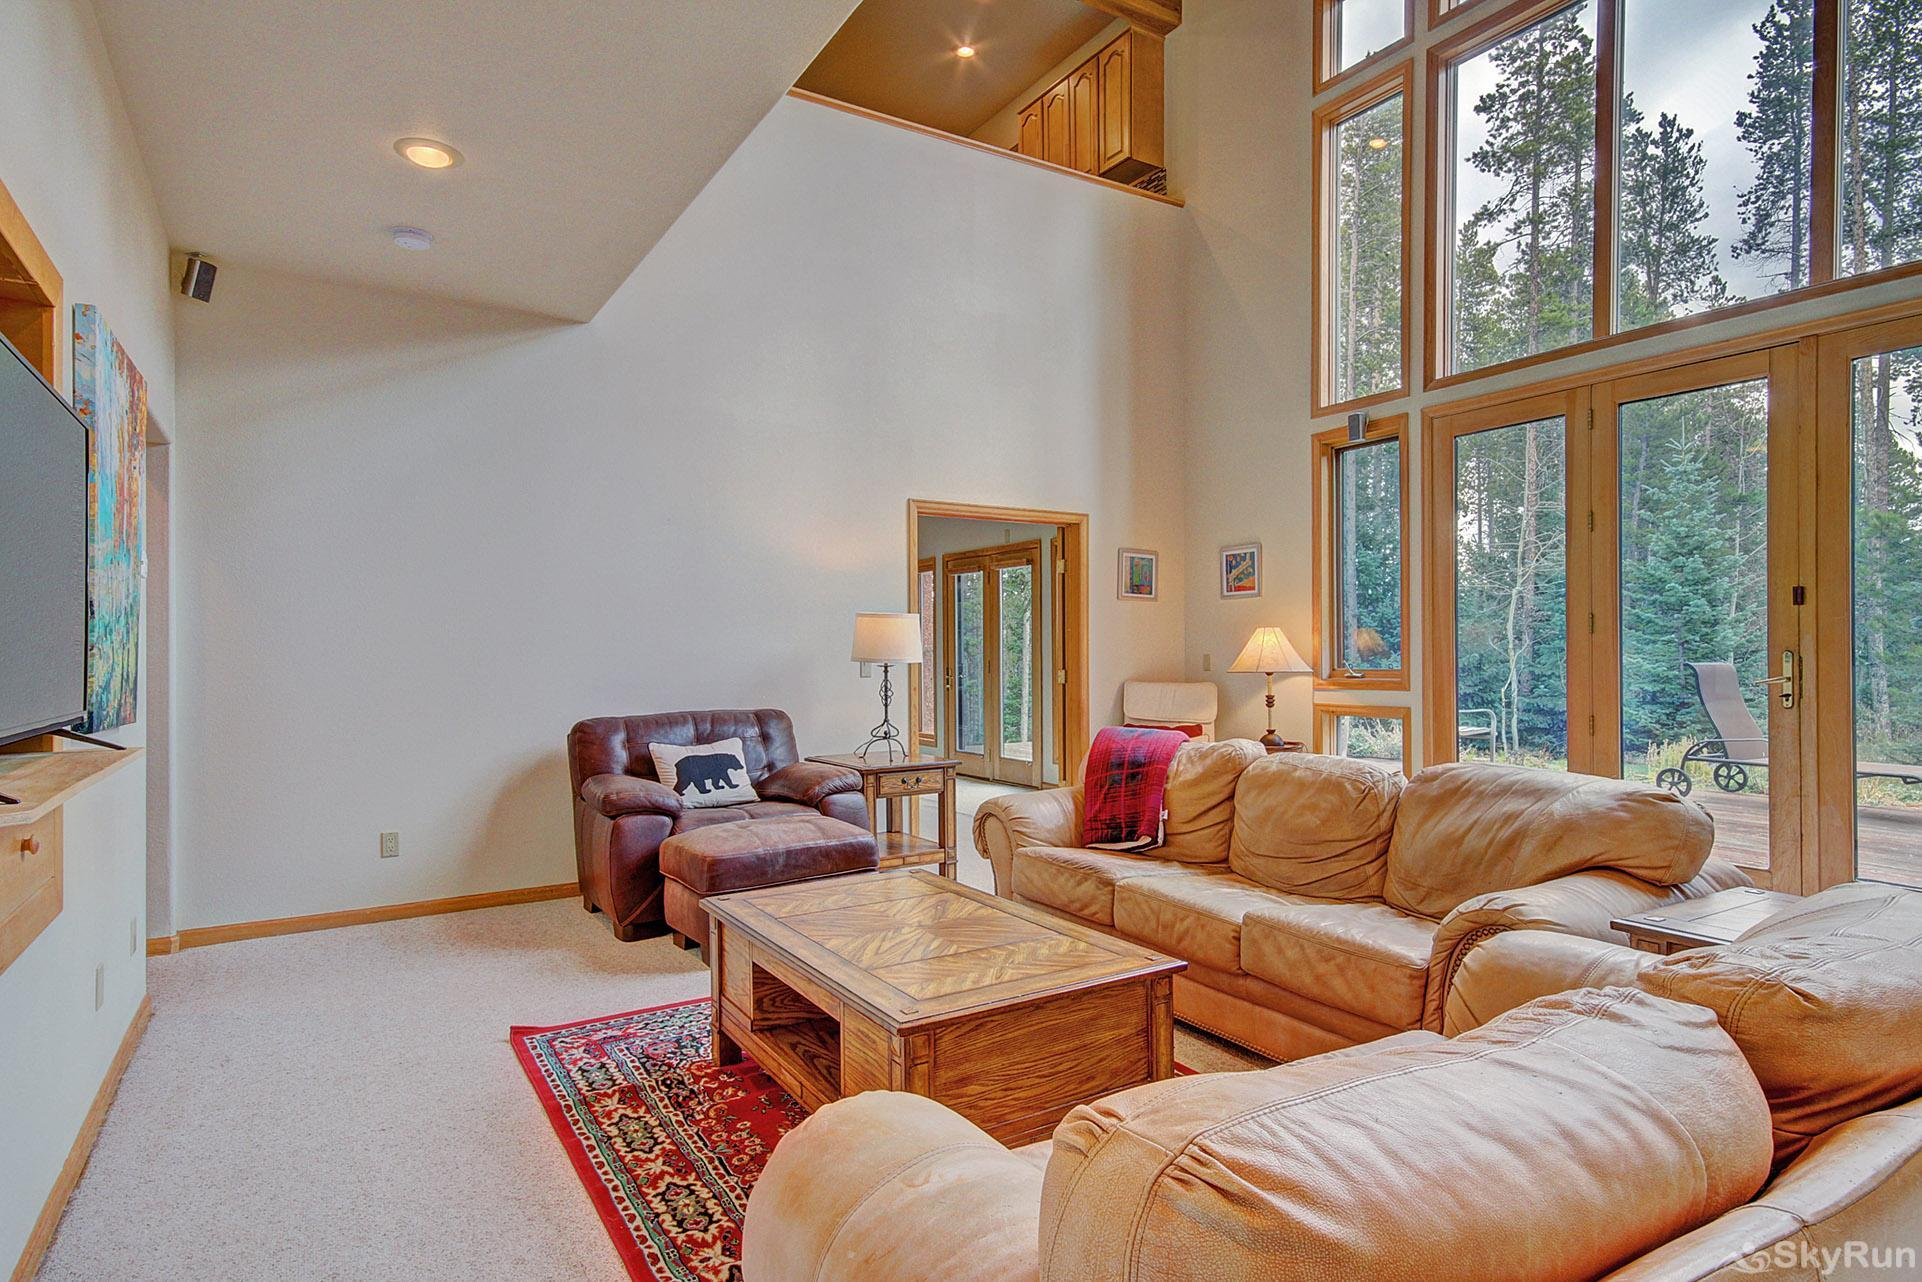 Secret Trail Lodge Large windows provide ample natural light